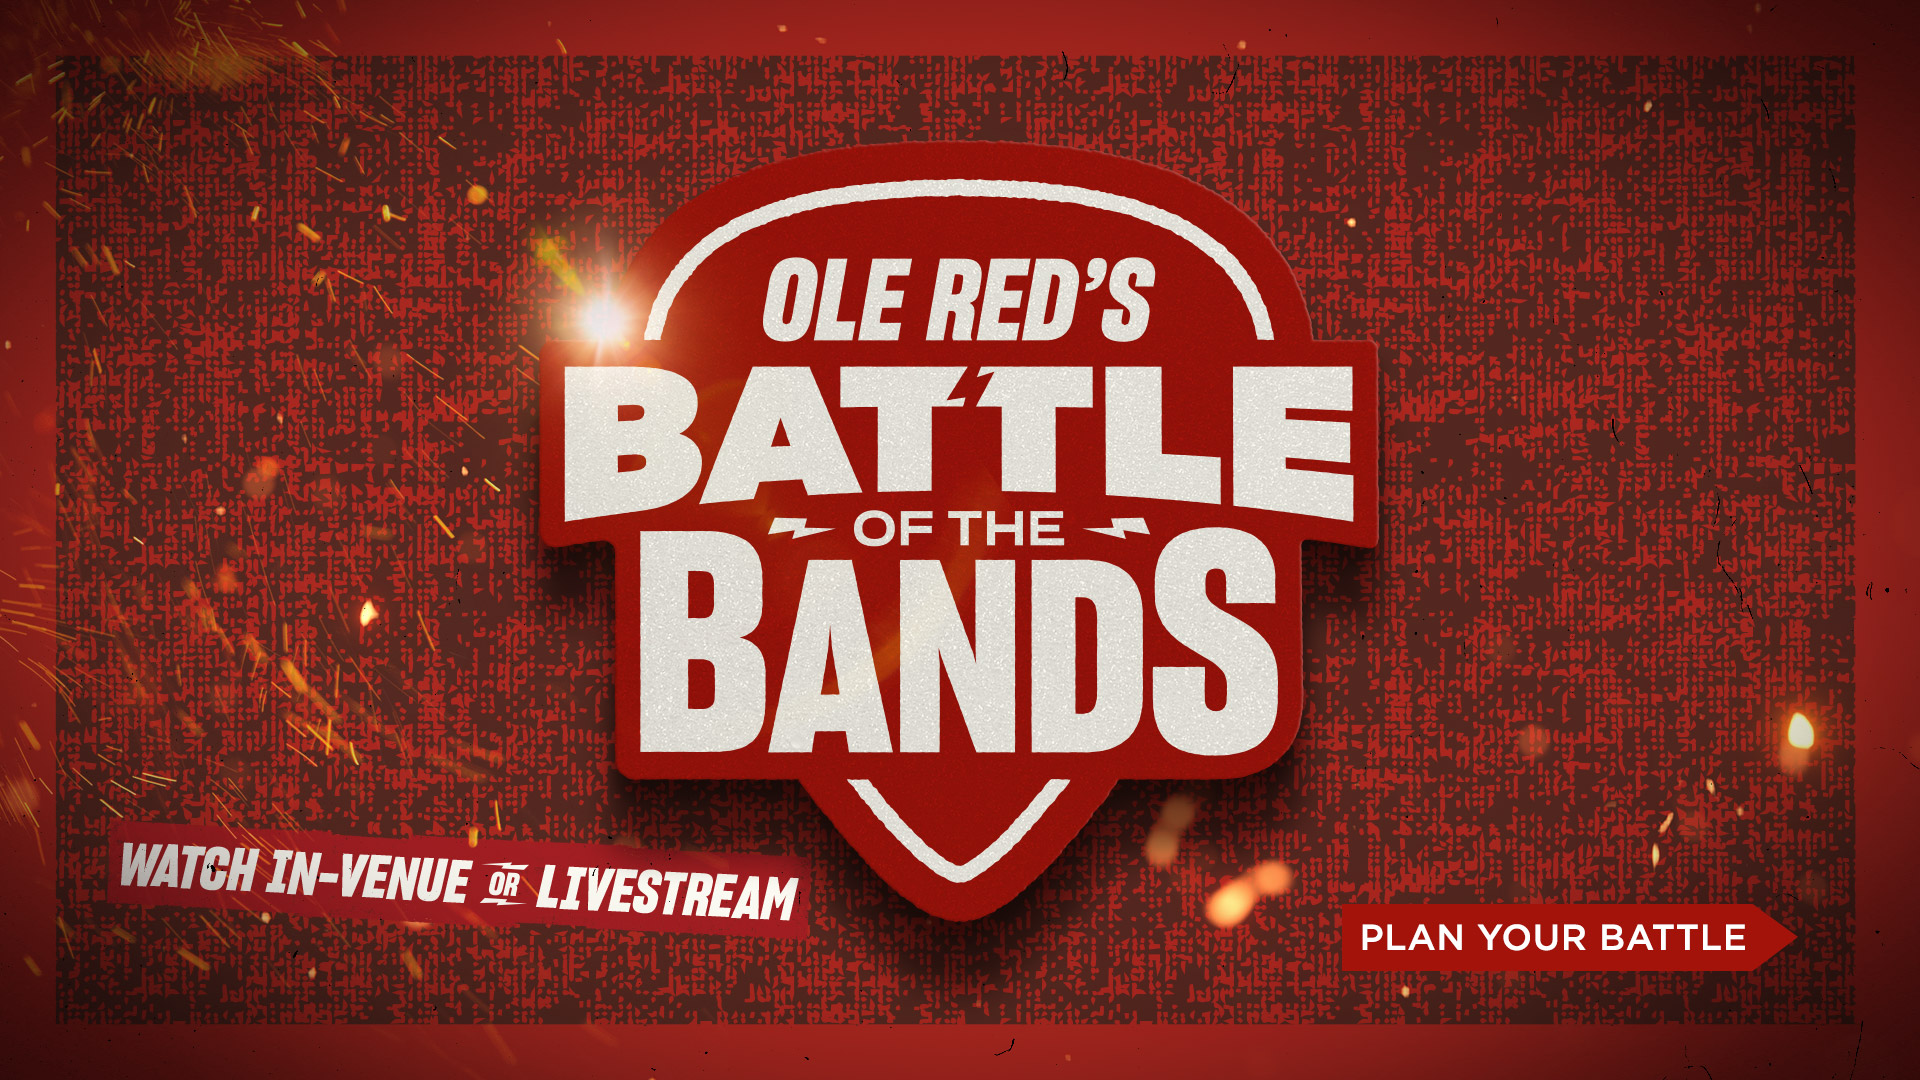 Ole Red Battle of the Bands - Plan your Battle